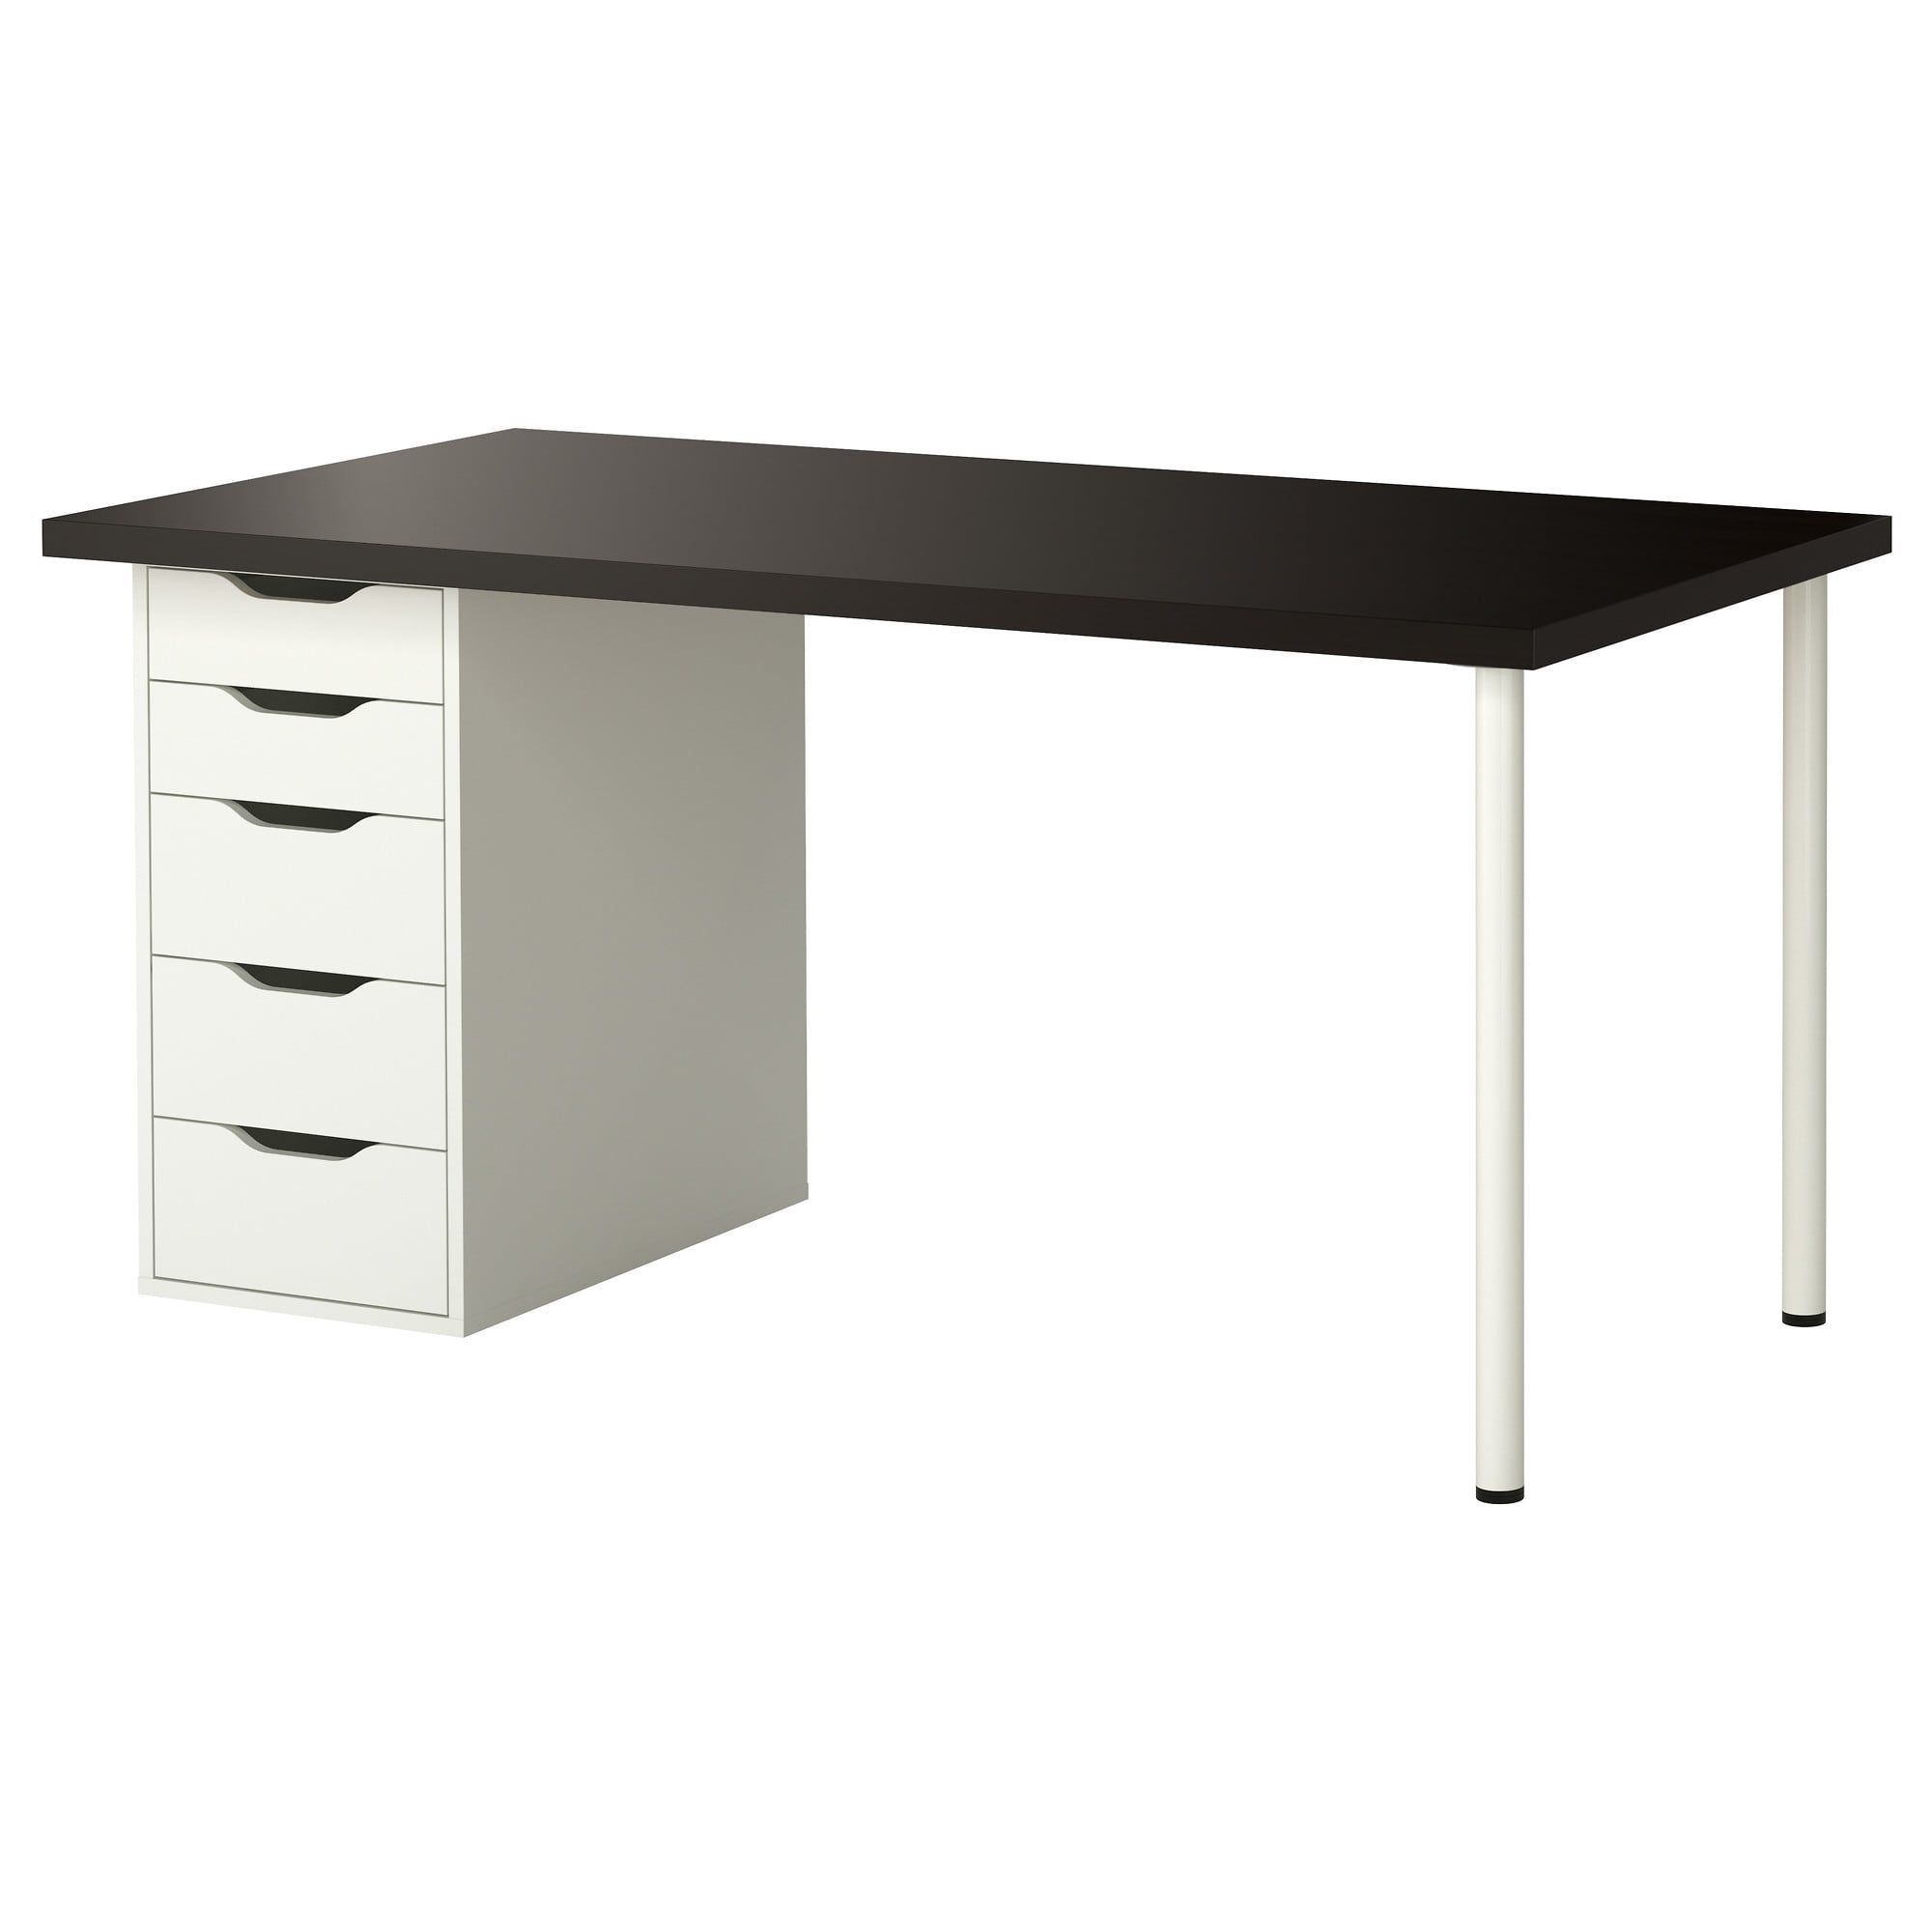 Linnmon Alex Table Black Brown White Find It Here Ikea In 2020 Ikea Ikea Canada Black Desk